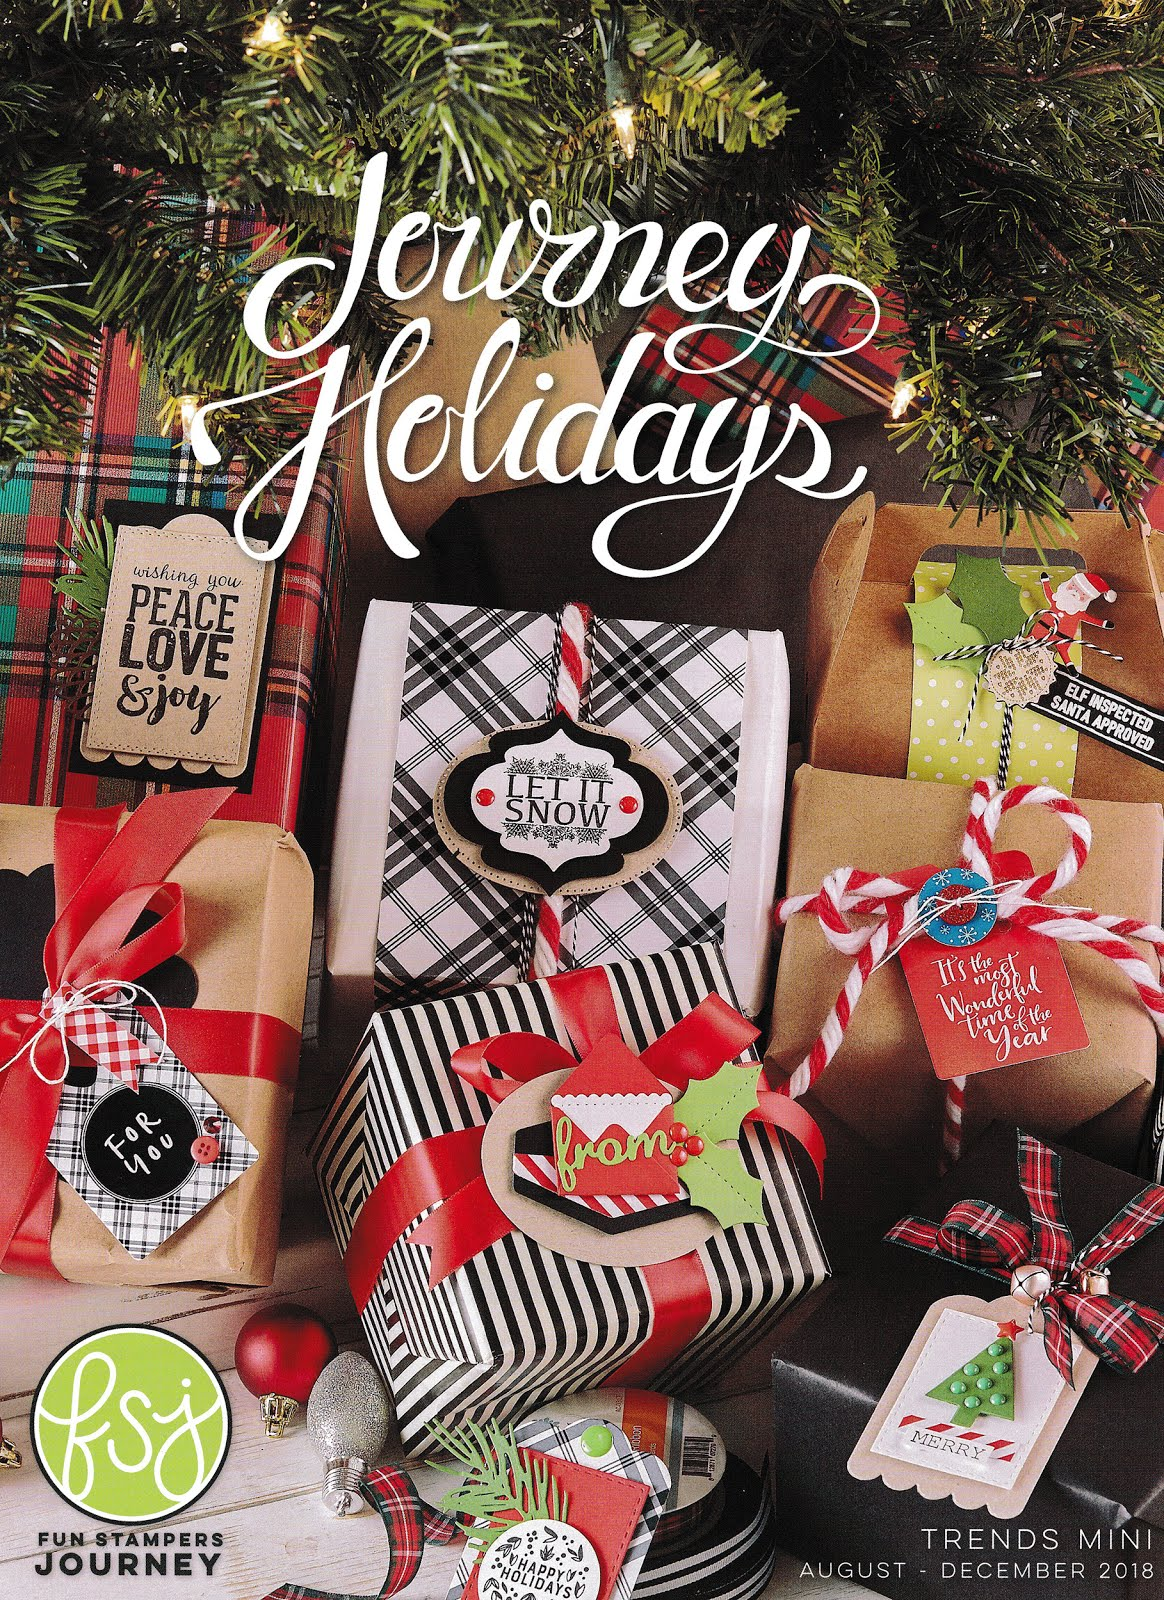 Journey Holiday Mini Catalog, 8/1 - 12/31, 2018